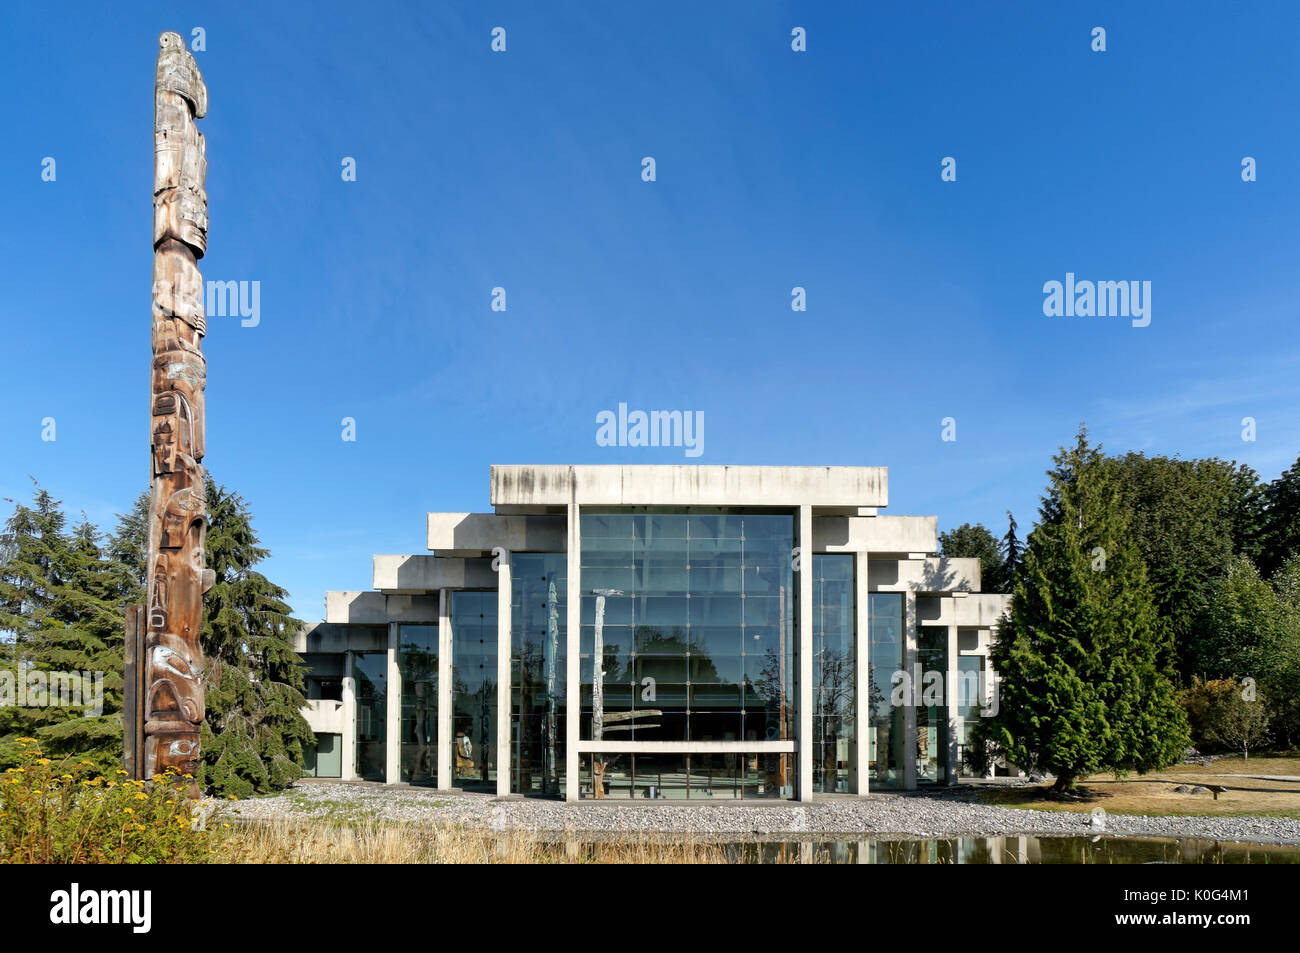 The UBC Museum of Anthropology building designed by Arthur Erickson, Vancouver, BC, Canada - Stock Image